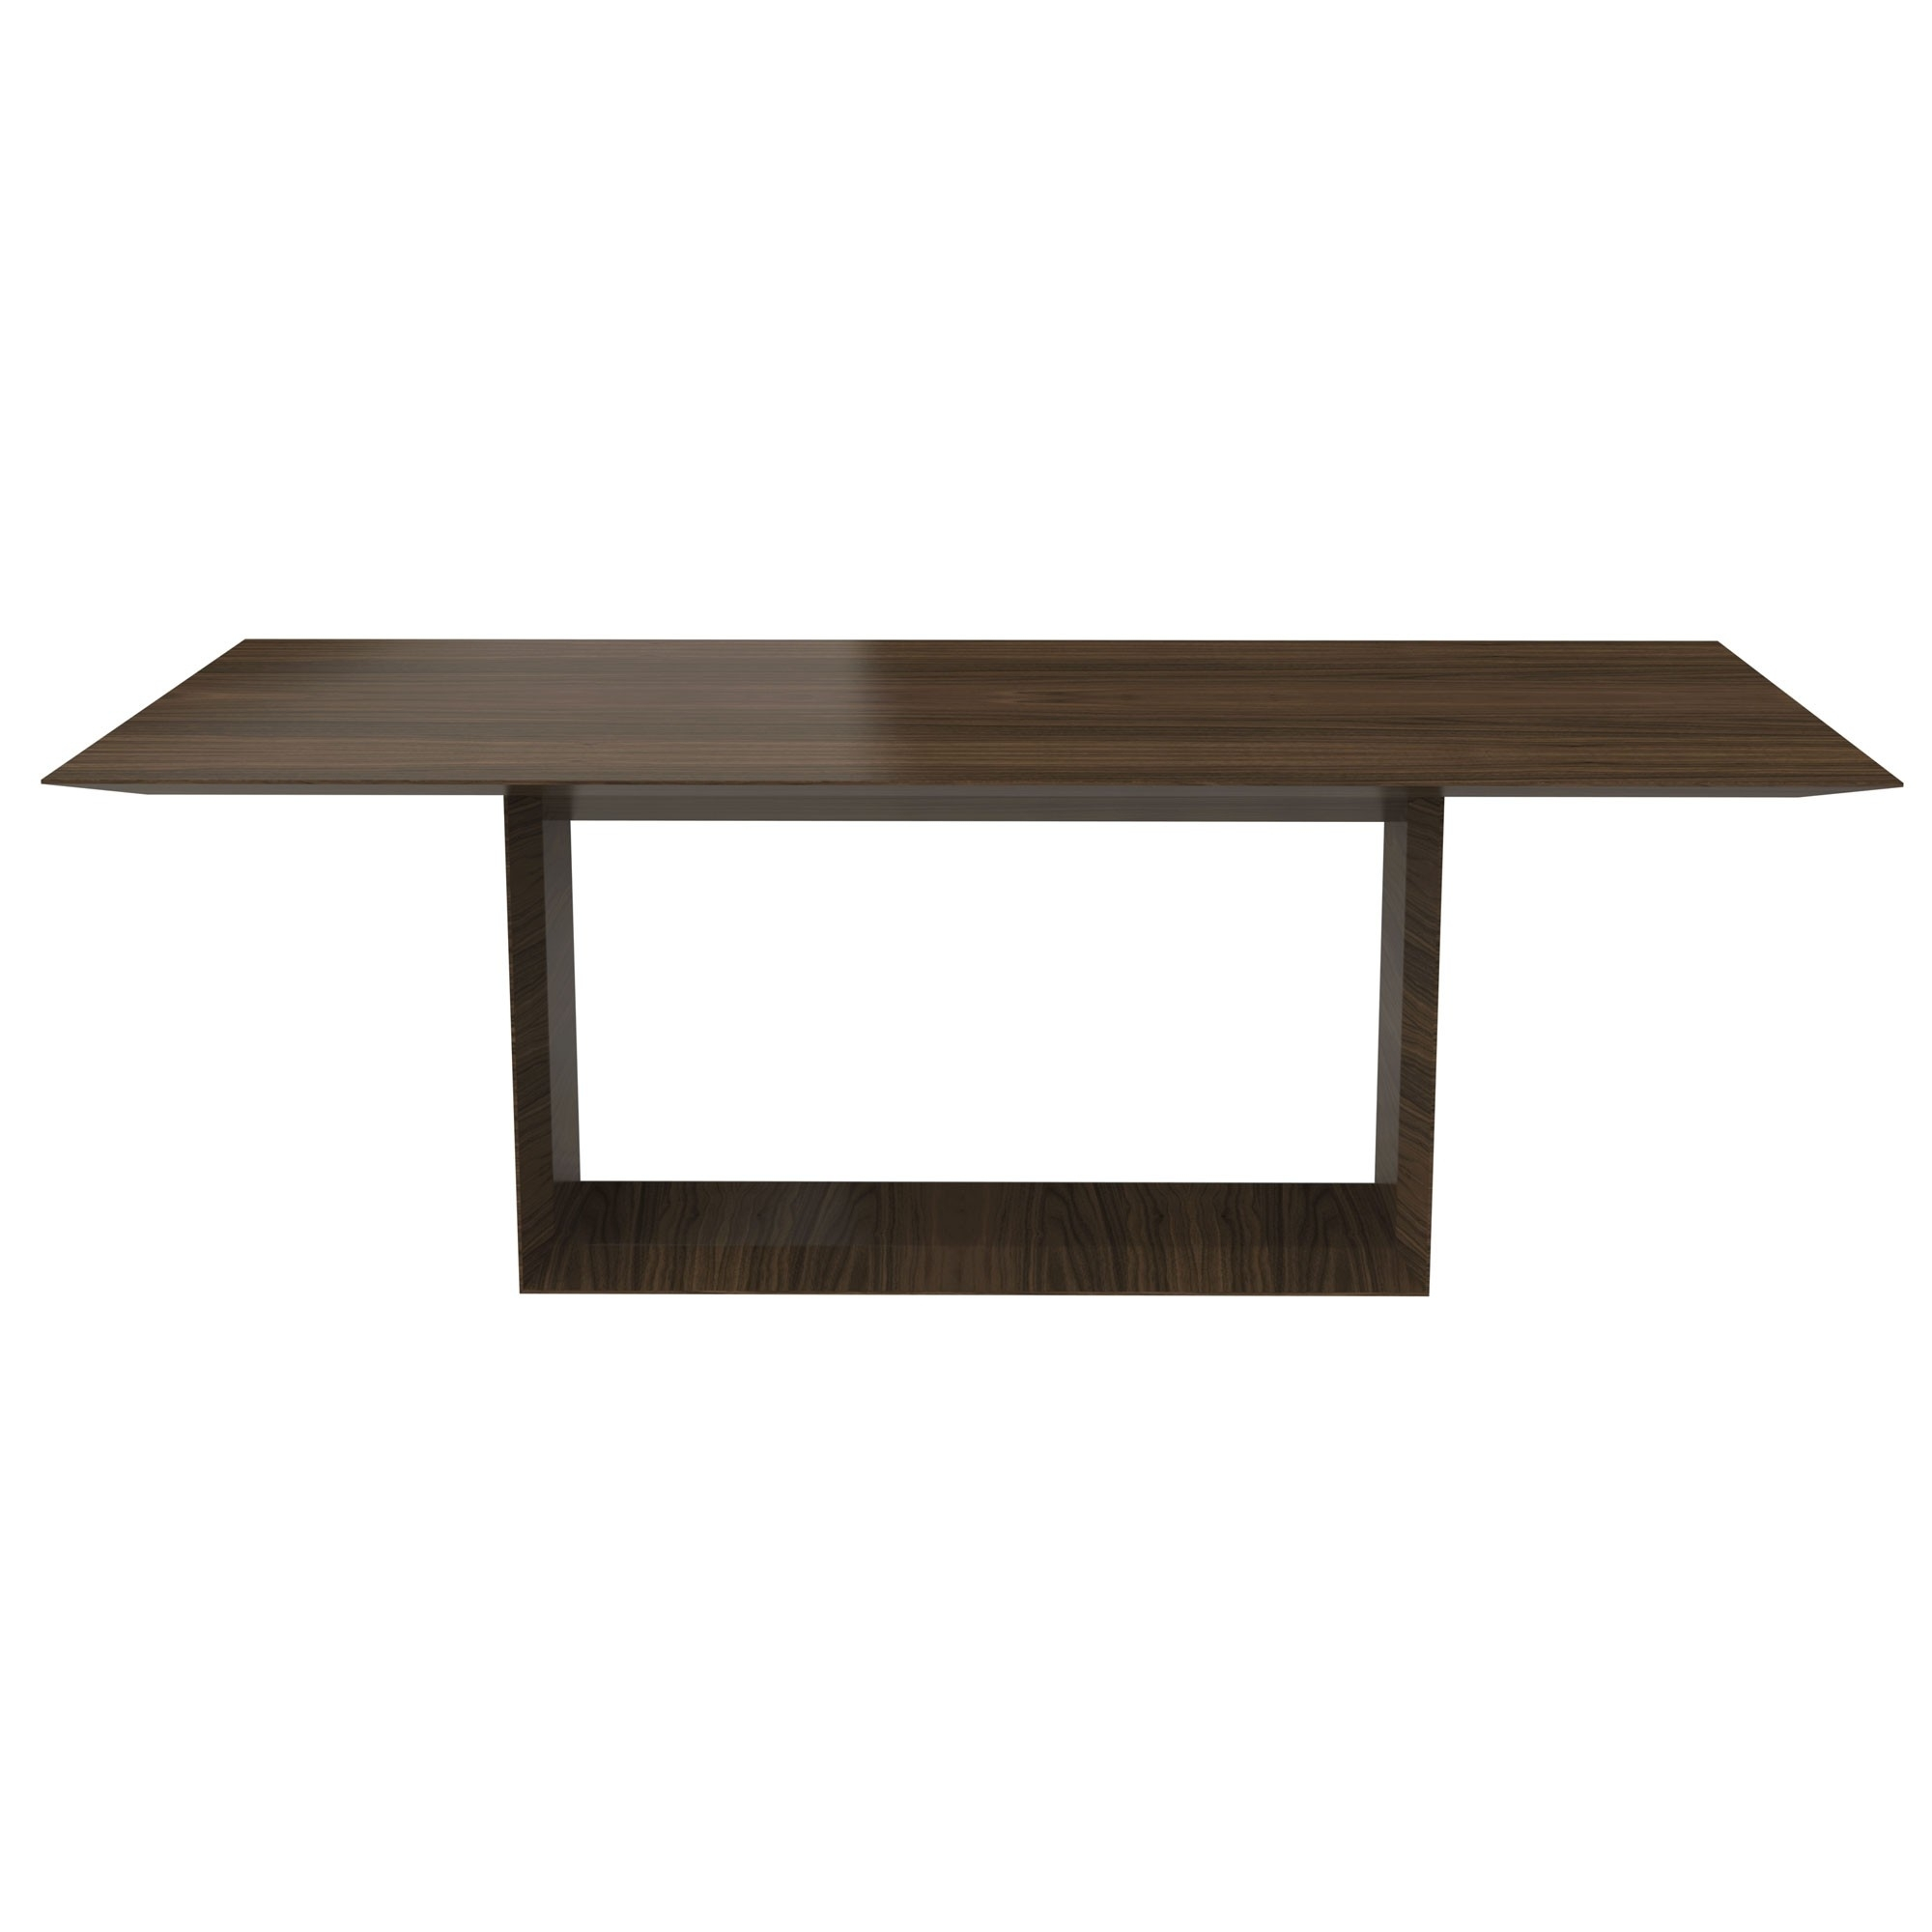 Modloft Greenwhich 87 Inch Dining Table | Matthew Izzo Intended For Most Current 87 Inch Dining Tables (View 19 of 20)